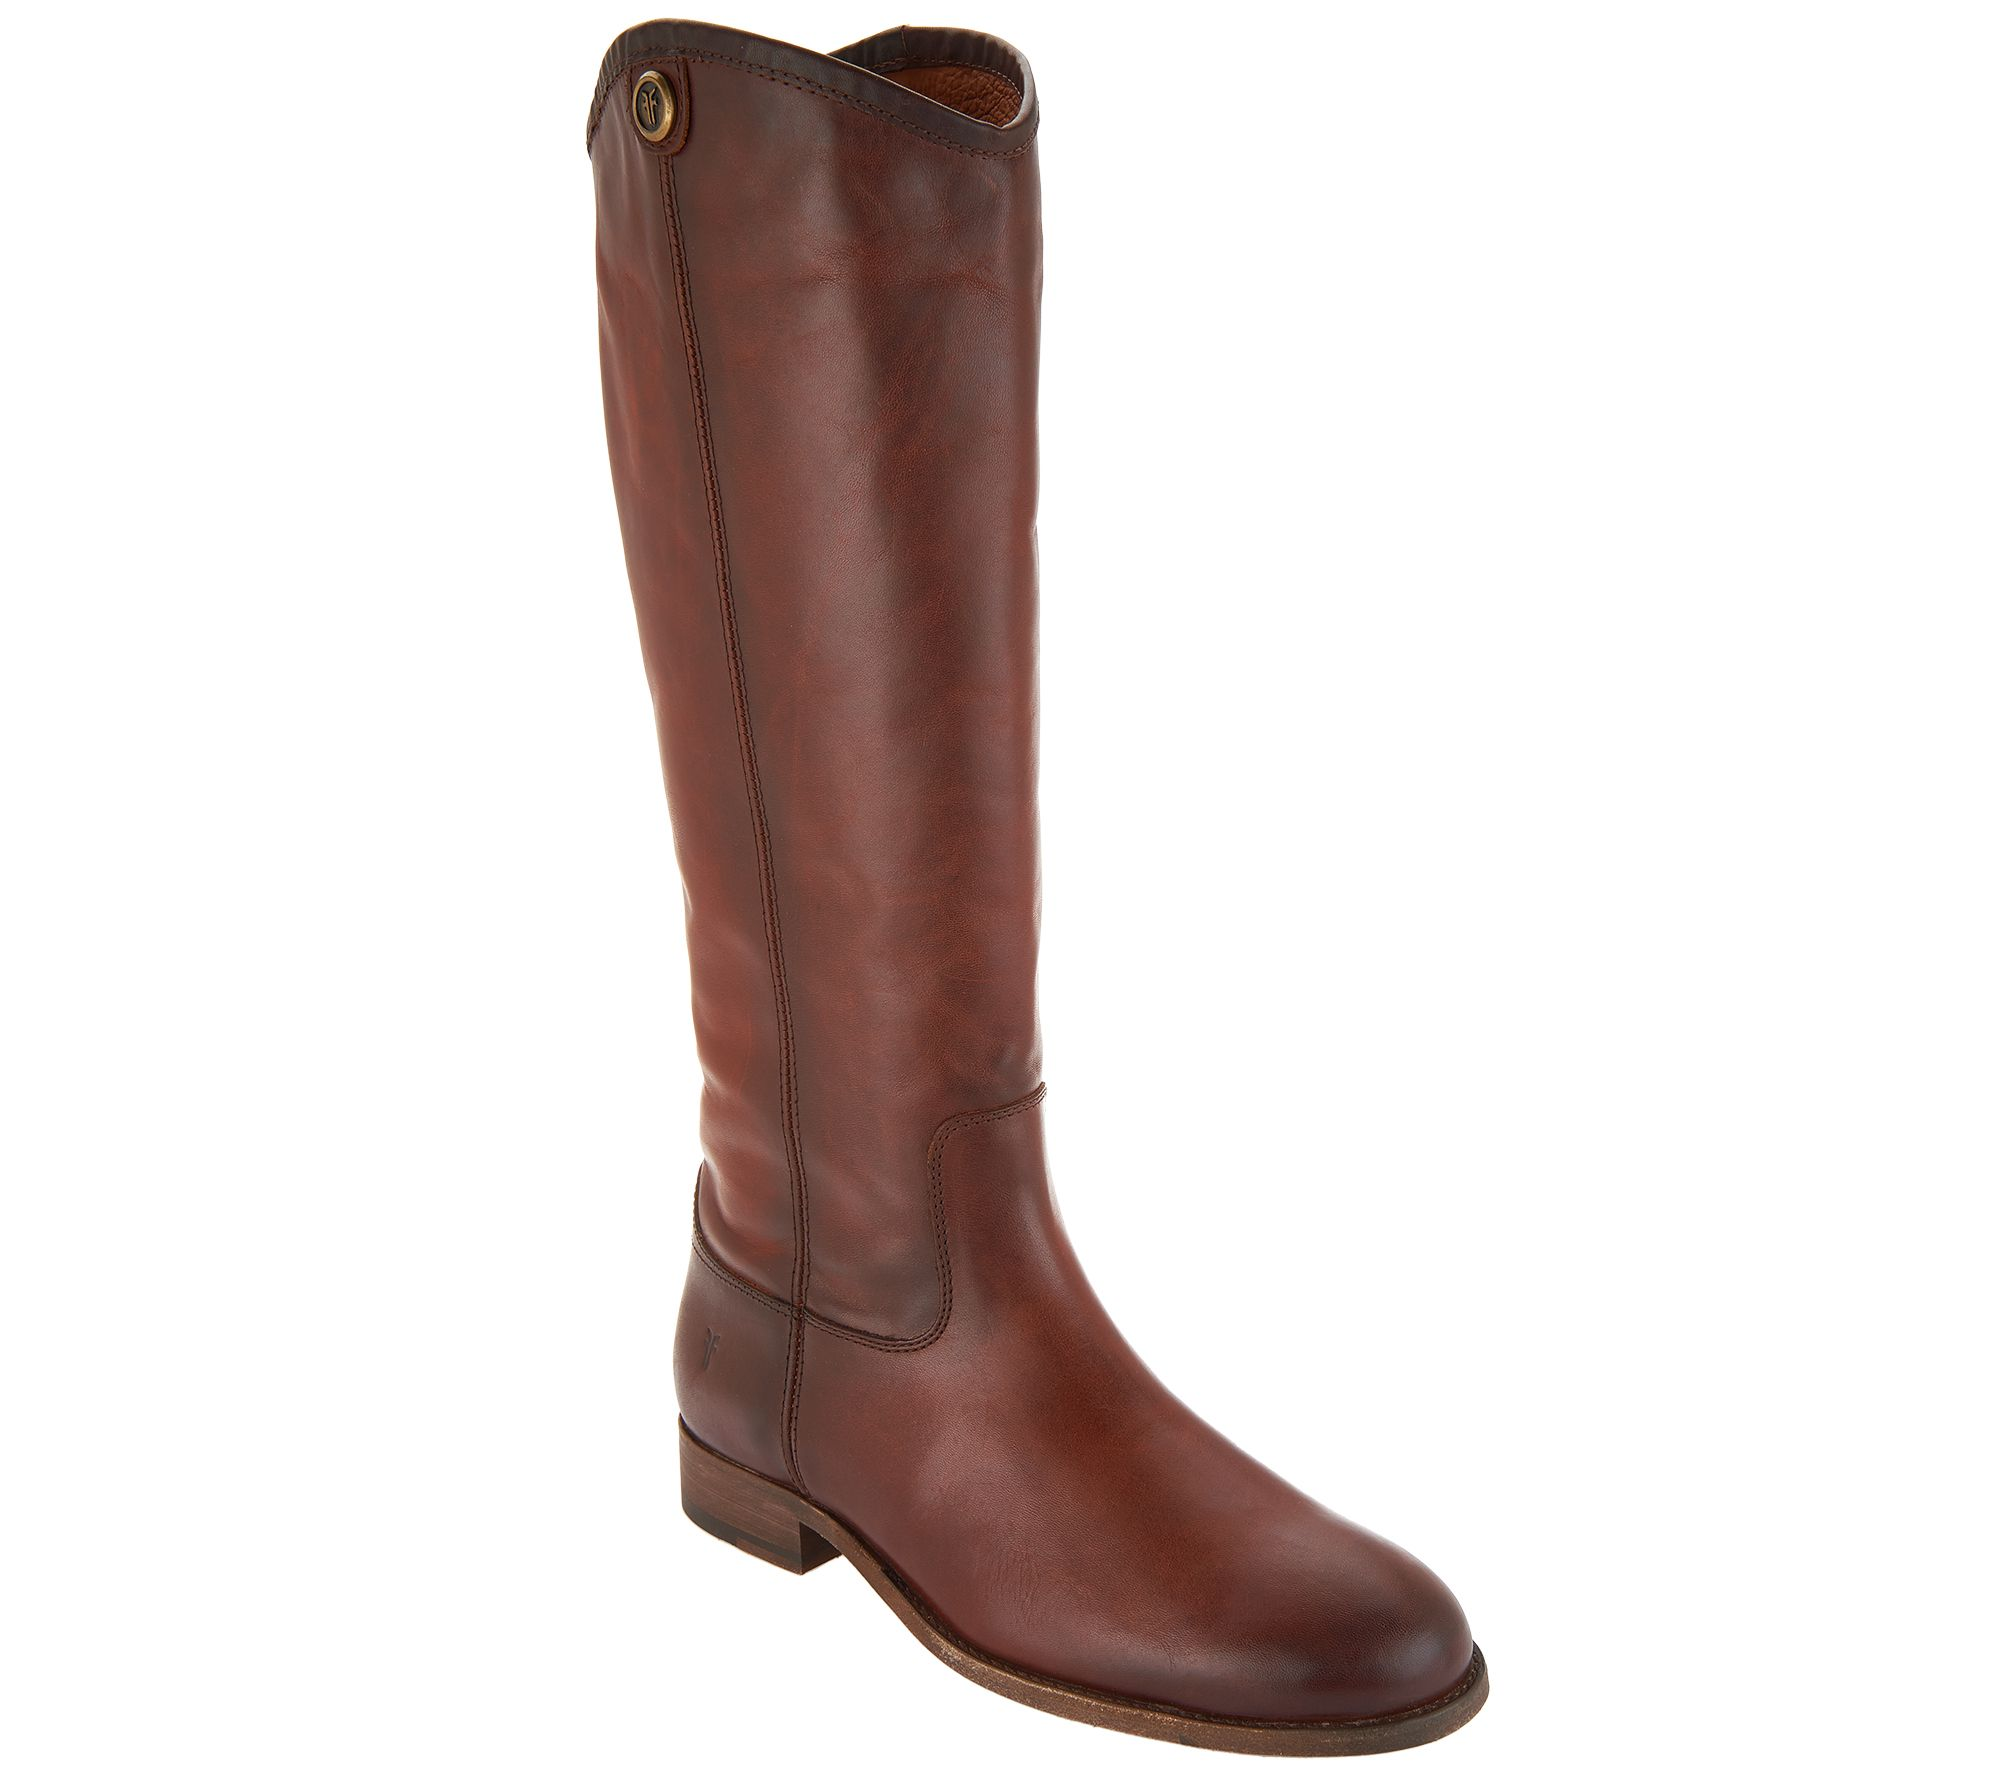 141a5778e6835 Frye Wide Calf Leather Tall Boots - Melissa Button 2 - Page 1 — QVC.com